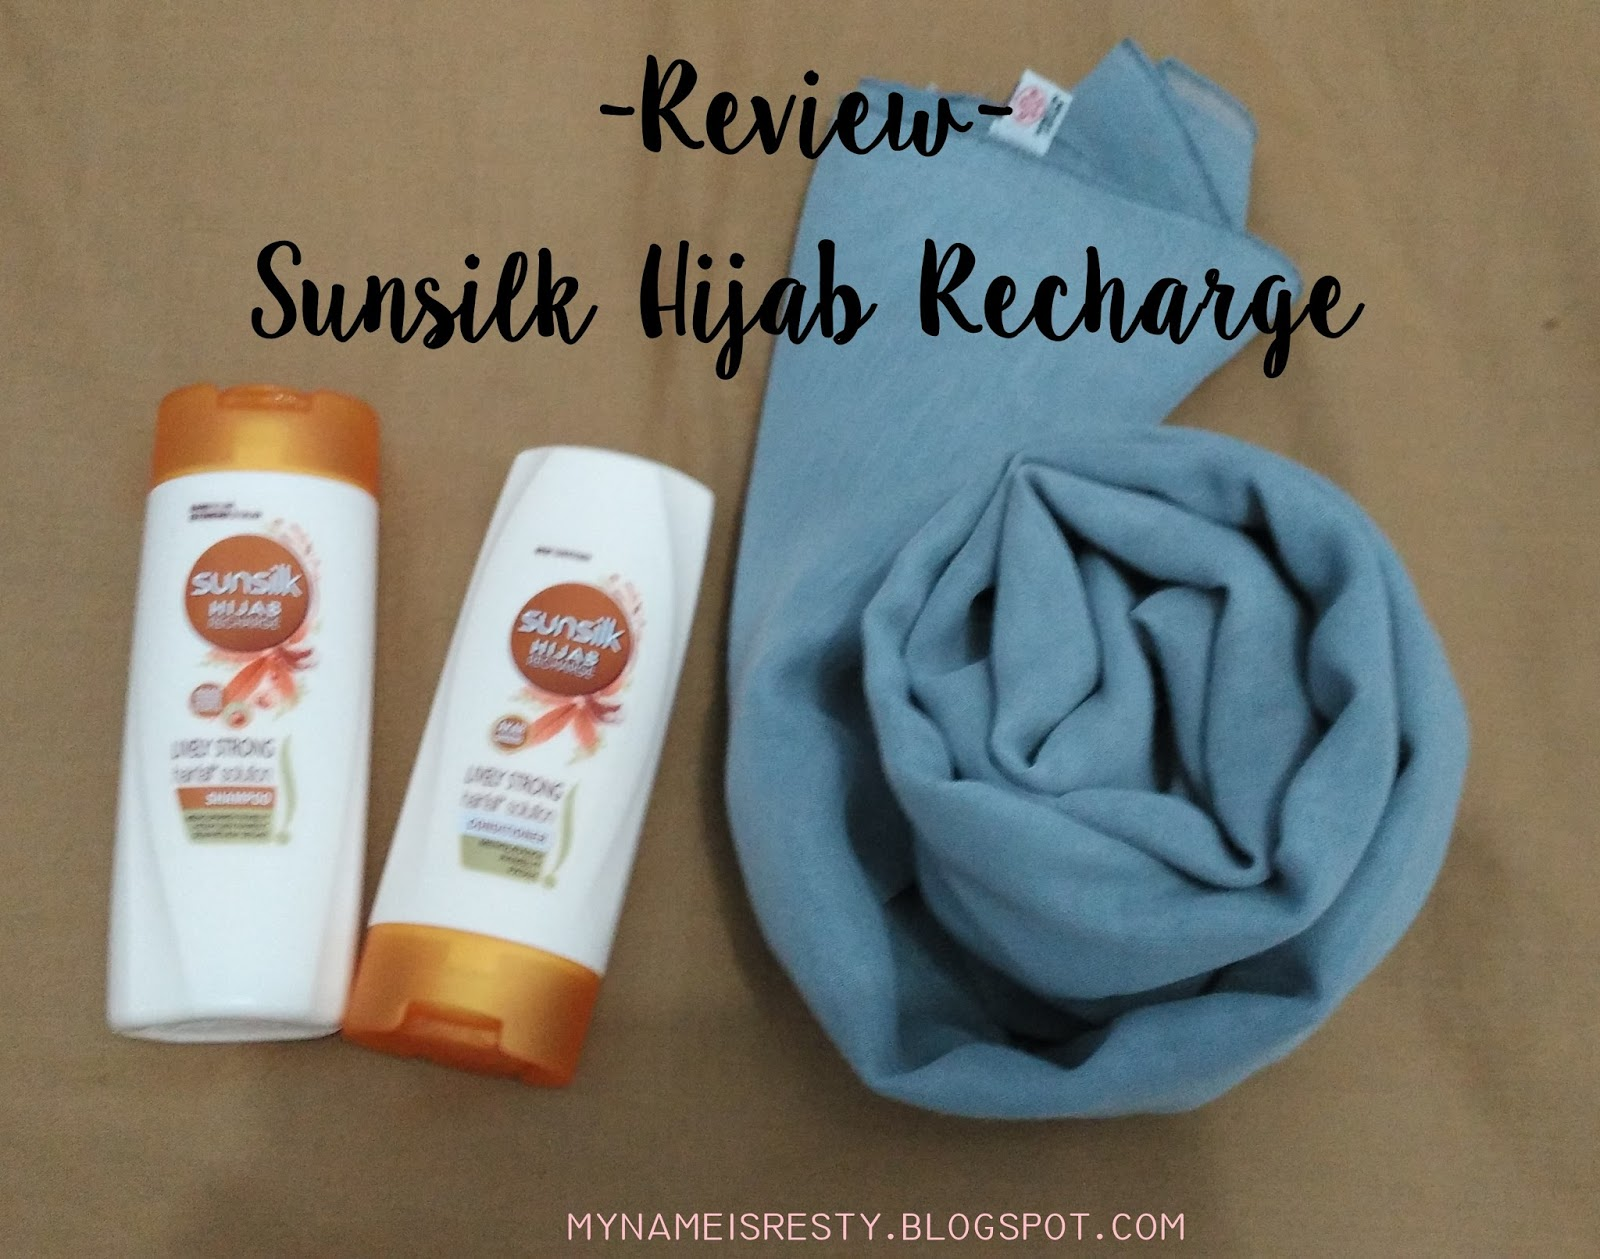 Love Live Laugh And Learn Review Sunsilk Hijab Recharge Lively Shampo Strong